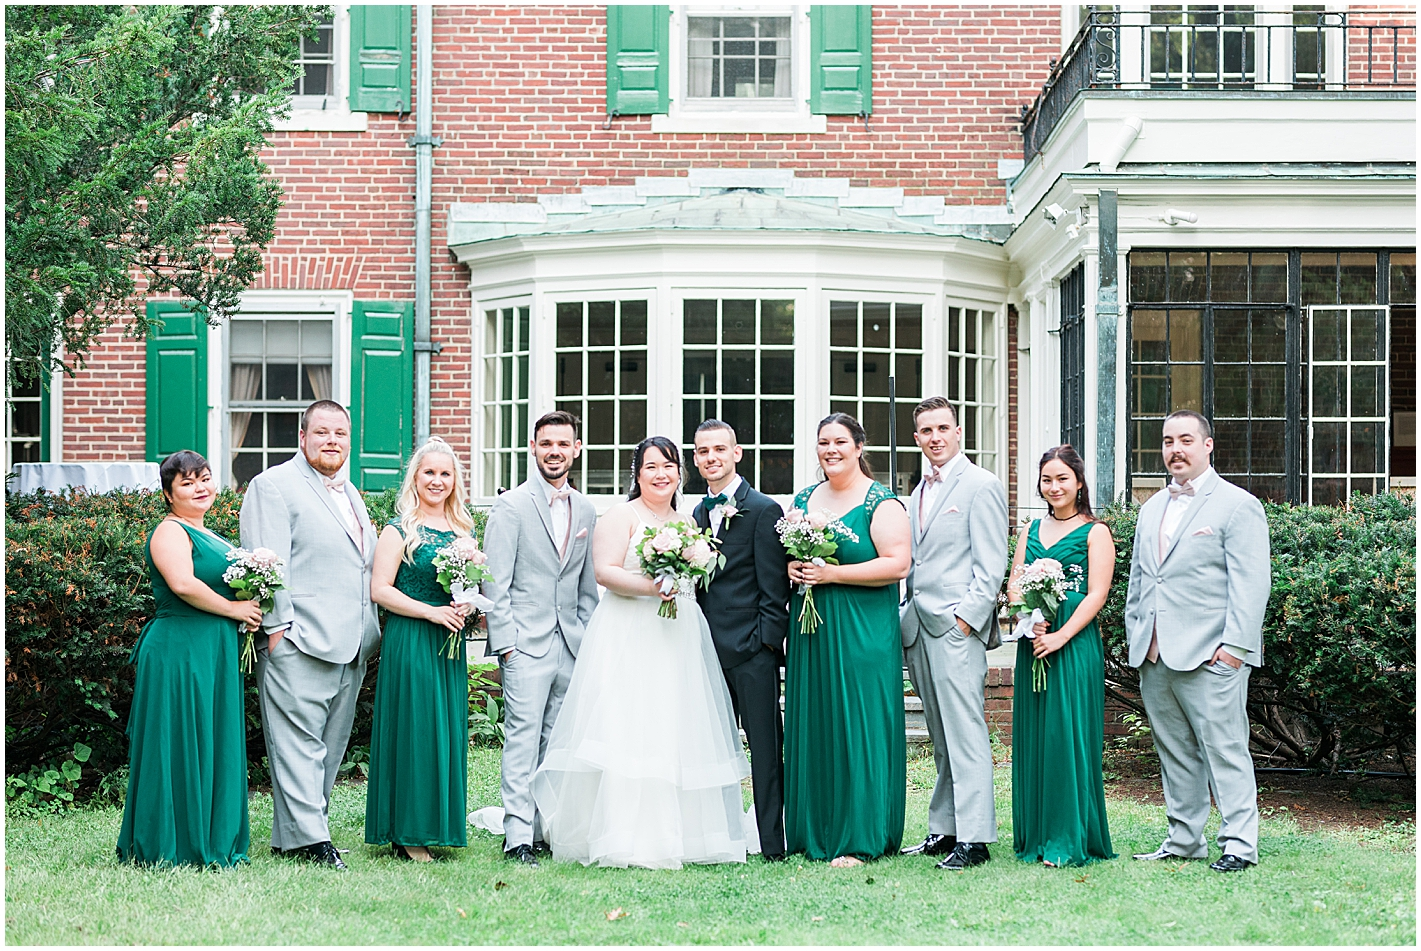 Wedding Party Formals at Governors Inn Photos by Alyssa Parker Photography